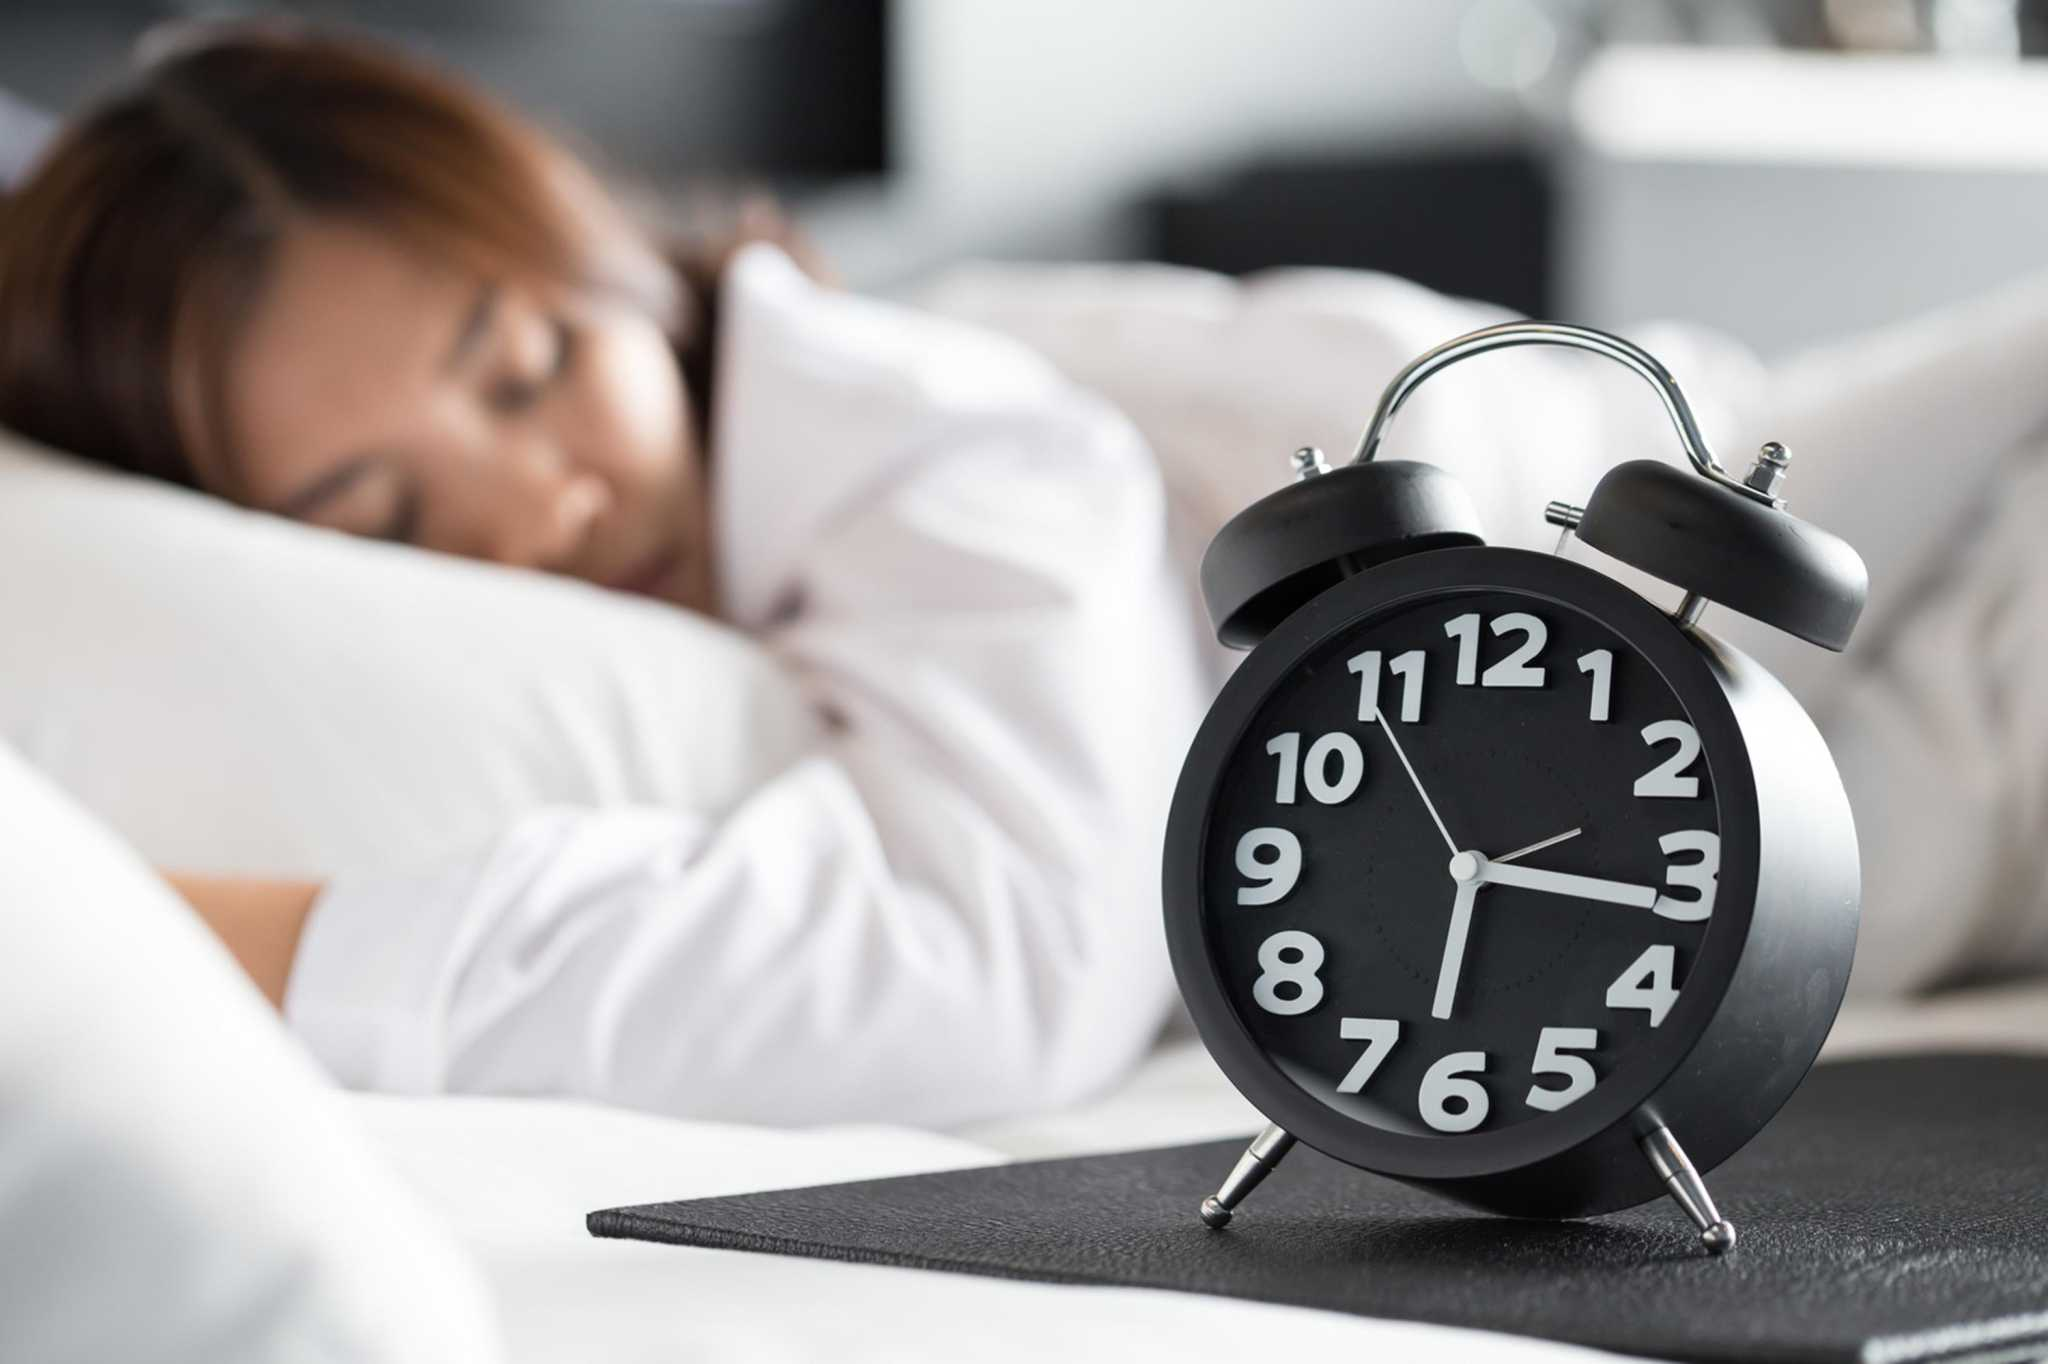 Want better sleep? A warm bath or shower prior to bedtime works wonders [Opinion]